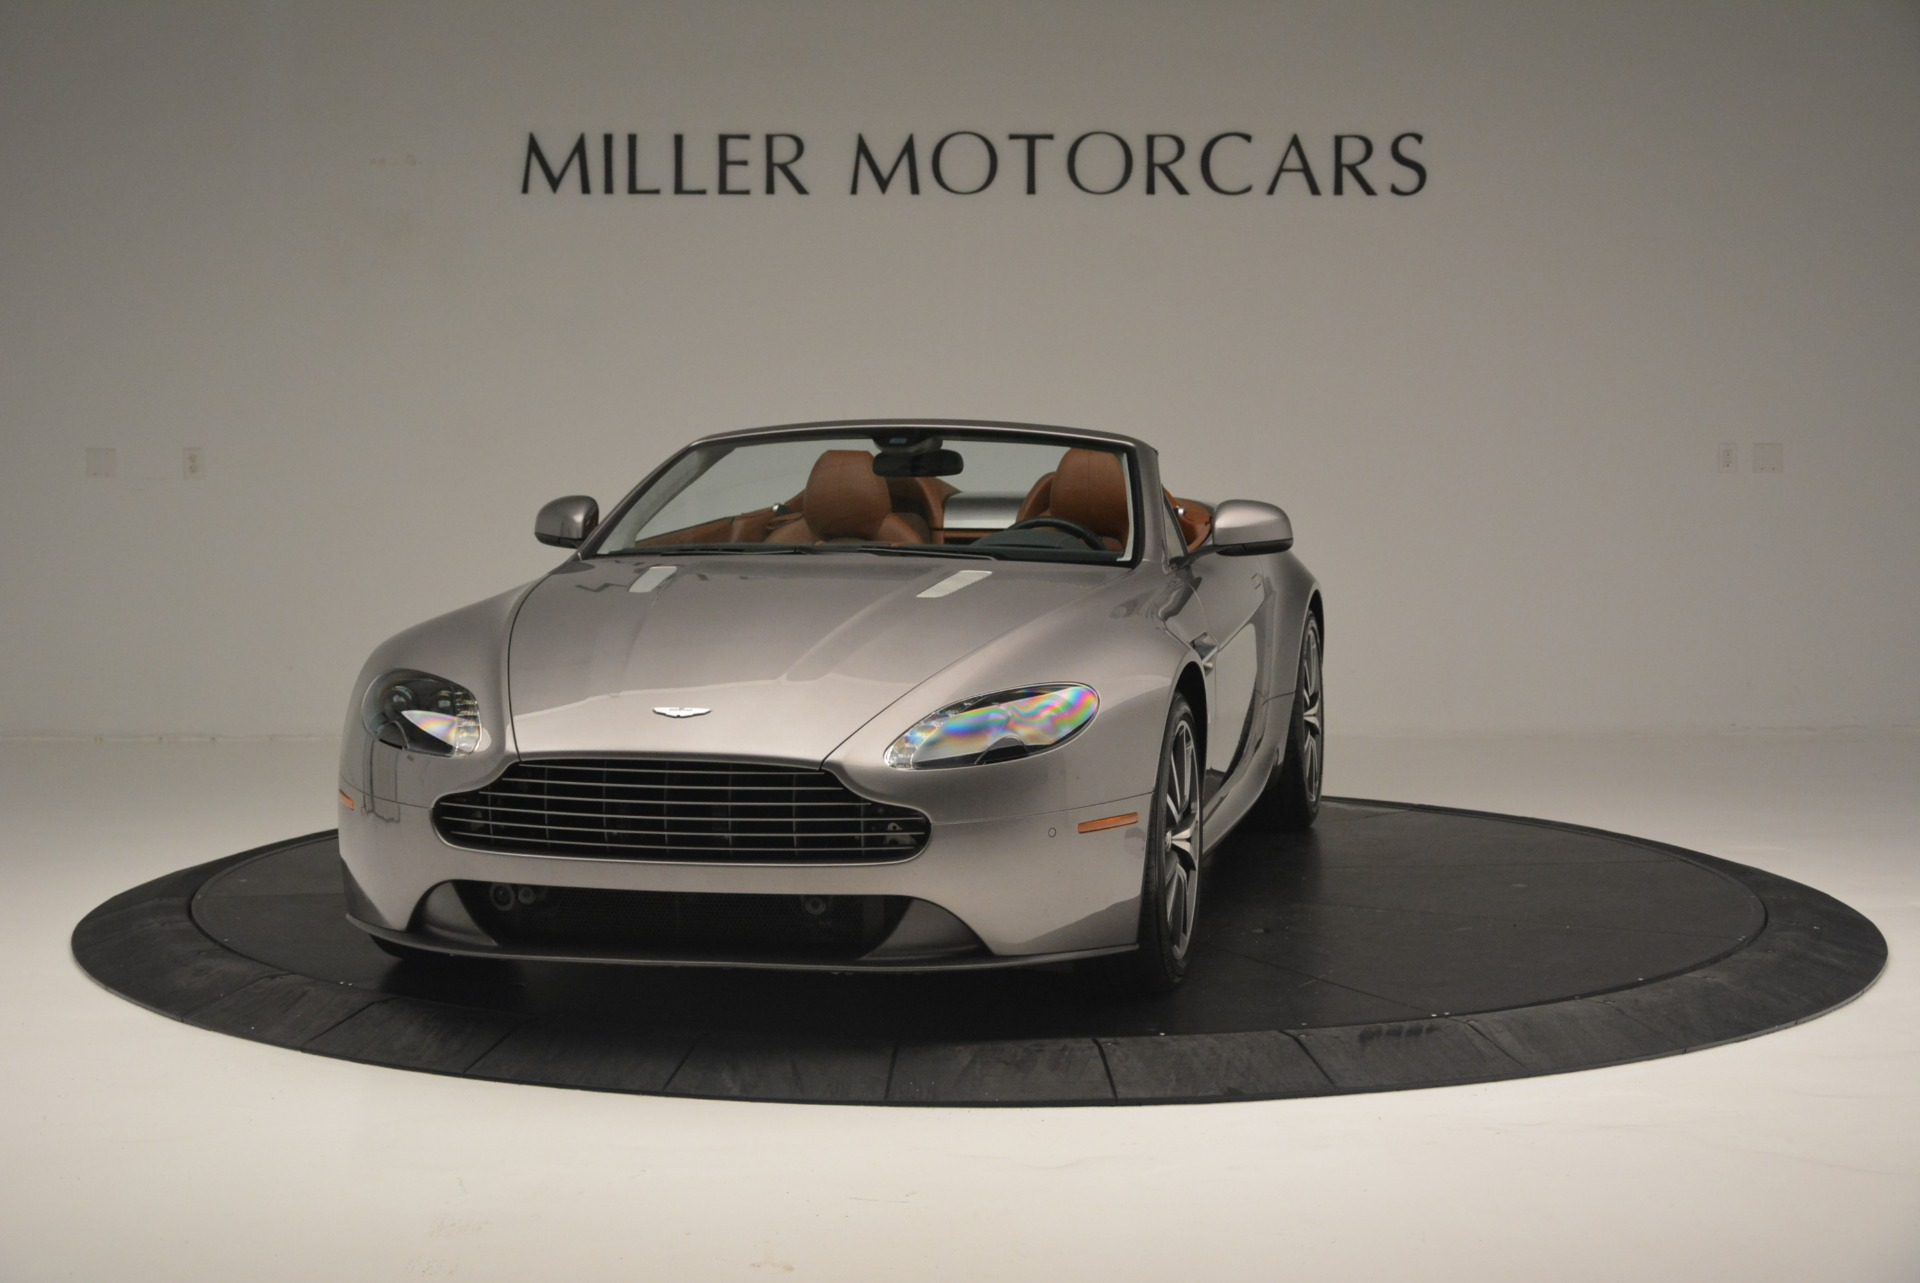 Pre Owned 2015 Aston Martin V8 Vantage Roadster For Sale Miller Motorcars Stock 7396